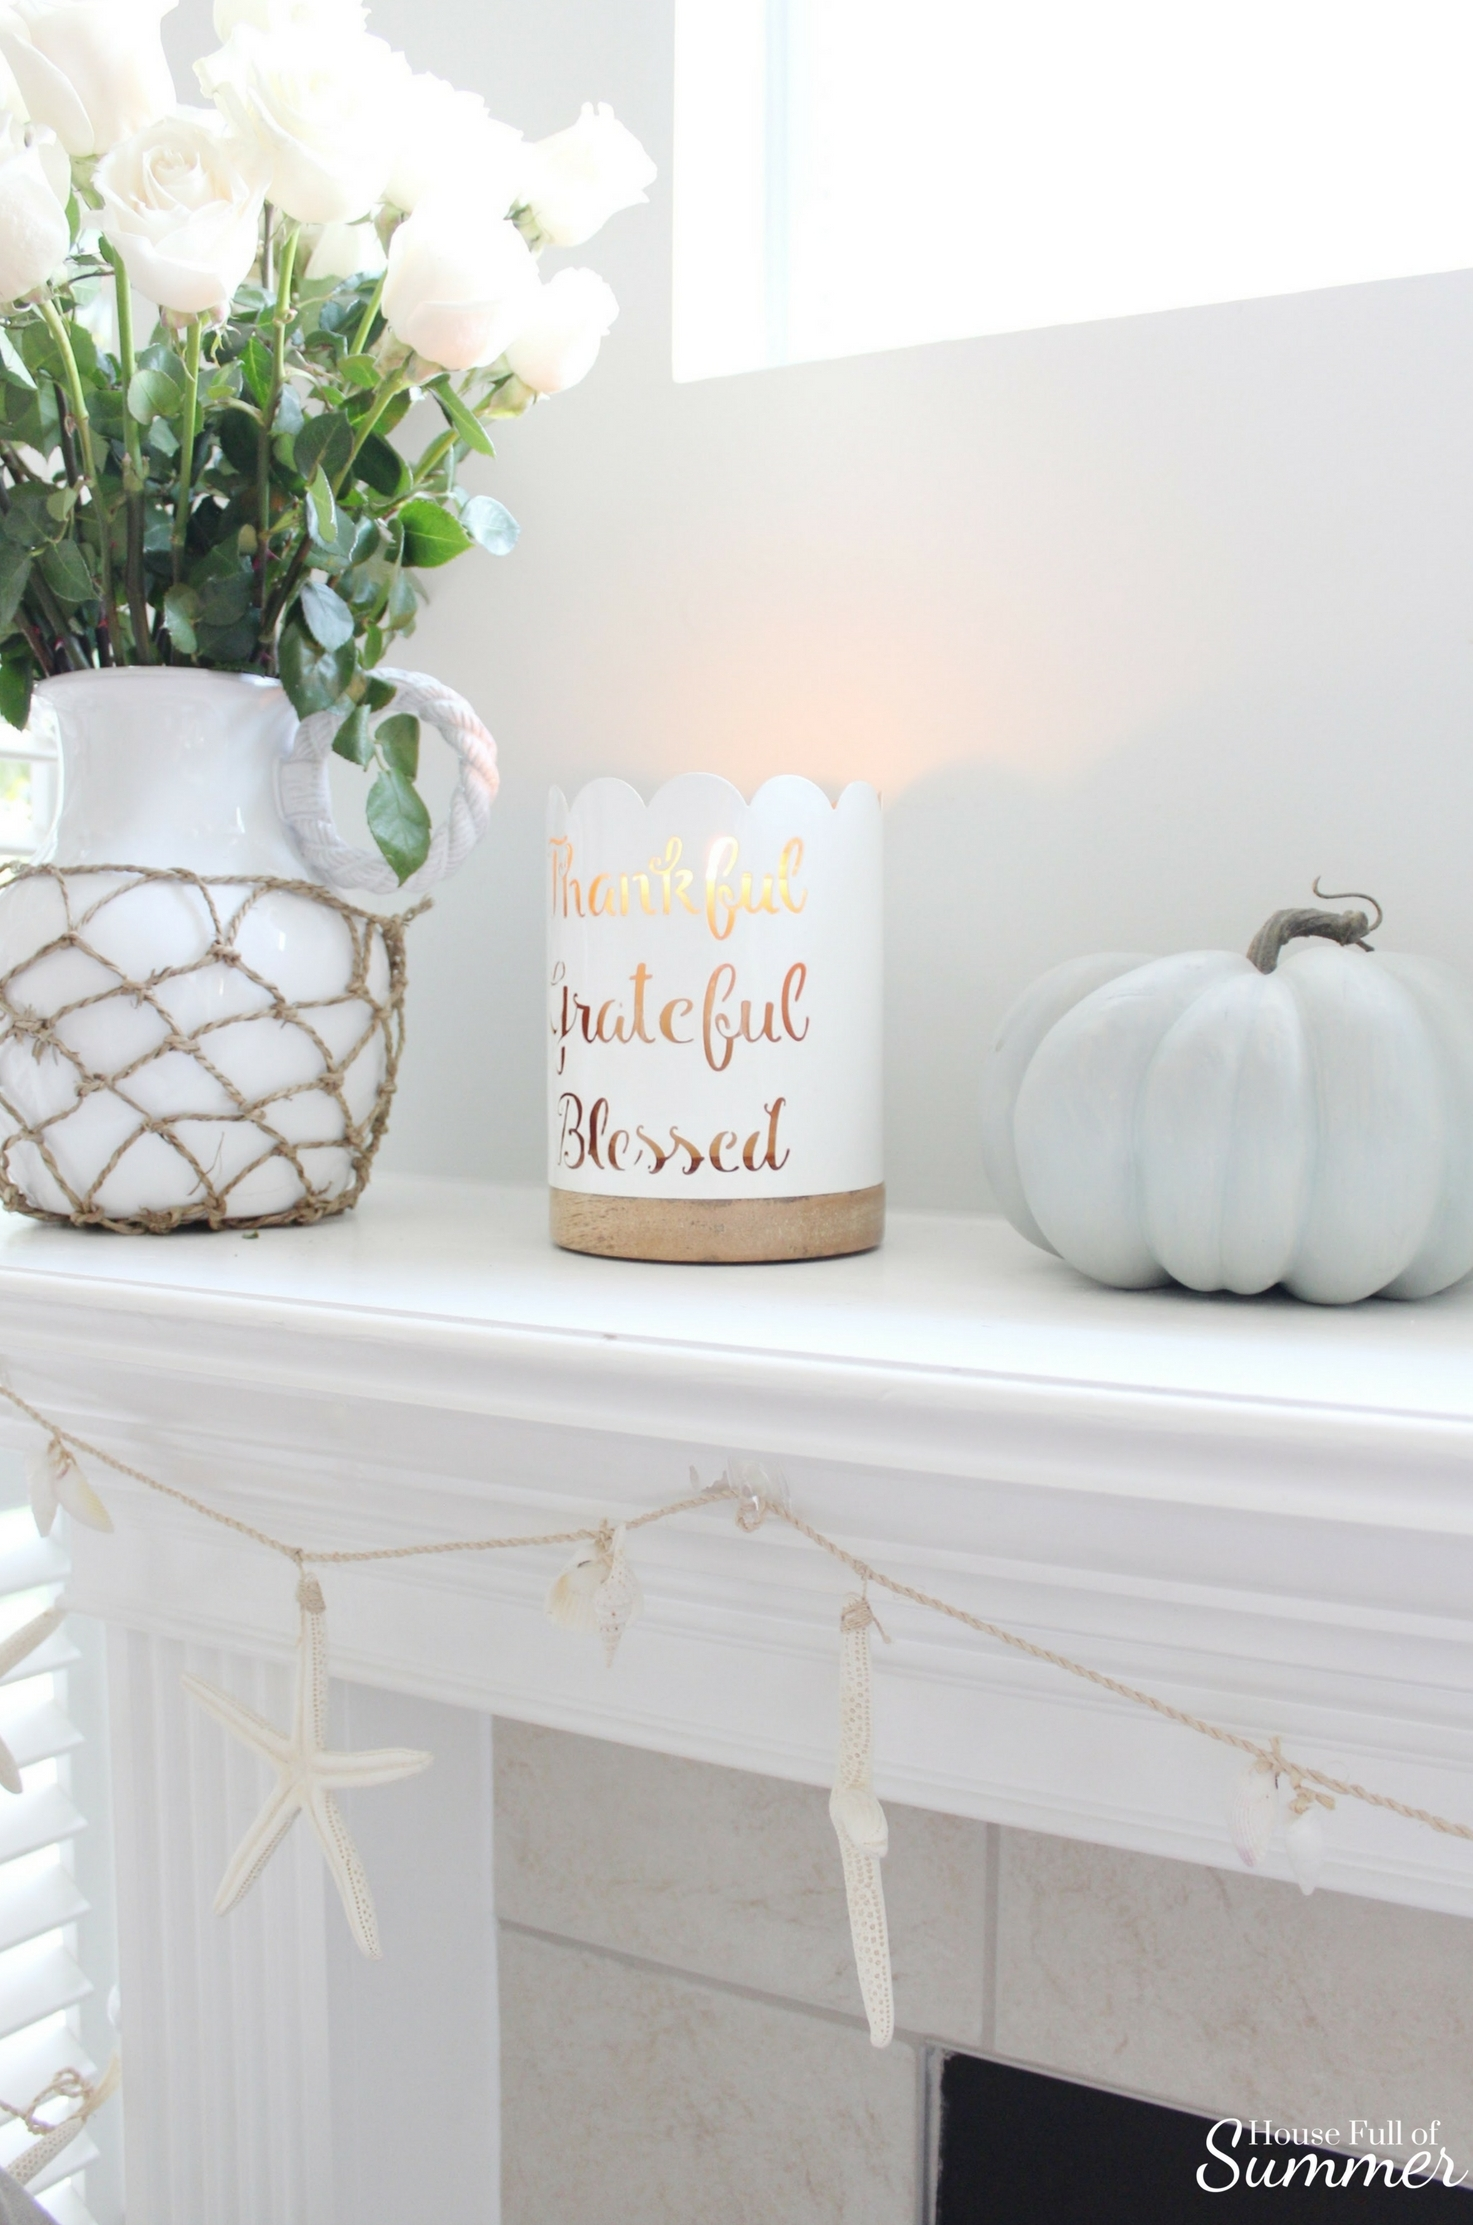 House Full of Summer: Fall Home Tour Blog Hop - Cozy, Coastal, Chic Family Room or Living Room fall decorating ideas, fireplace, neutral interior, white pumpkins, fall mantel ideas, starfish garland, natural decor, thanksgiving ideas